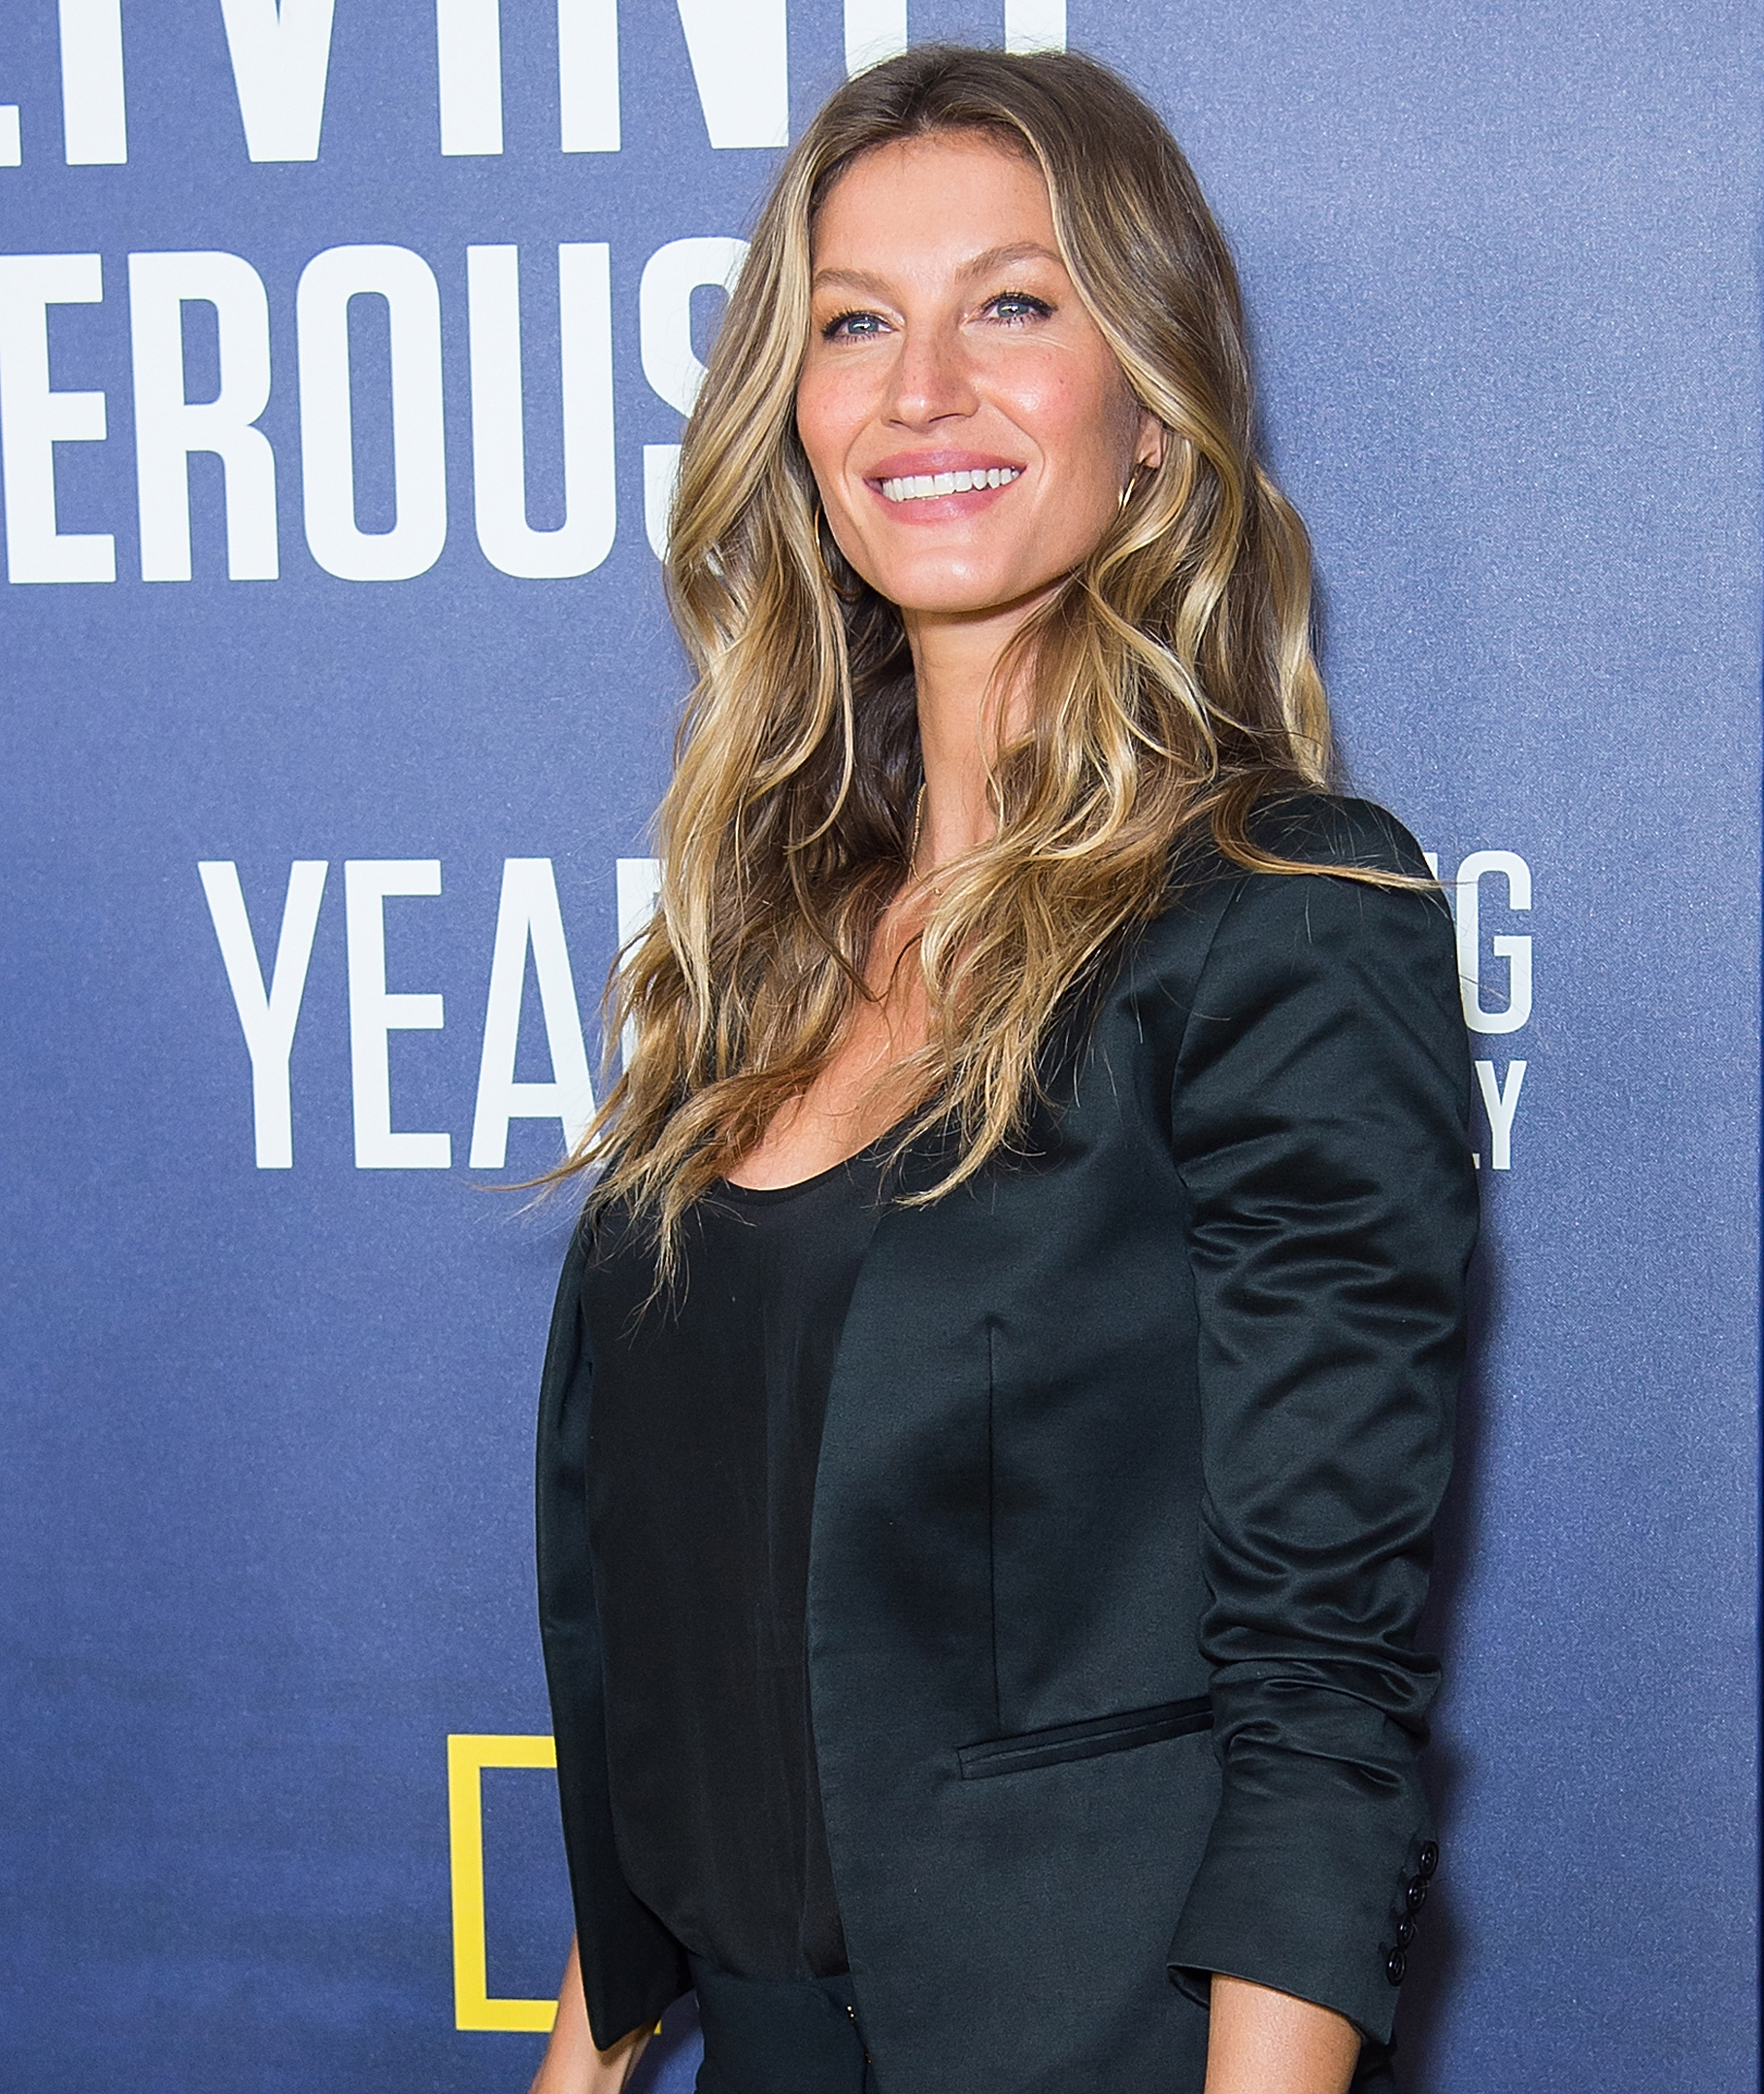 gisele-bundchen-en-el-national-geographics-years-of-living-dangerously.jpg